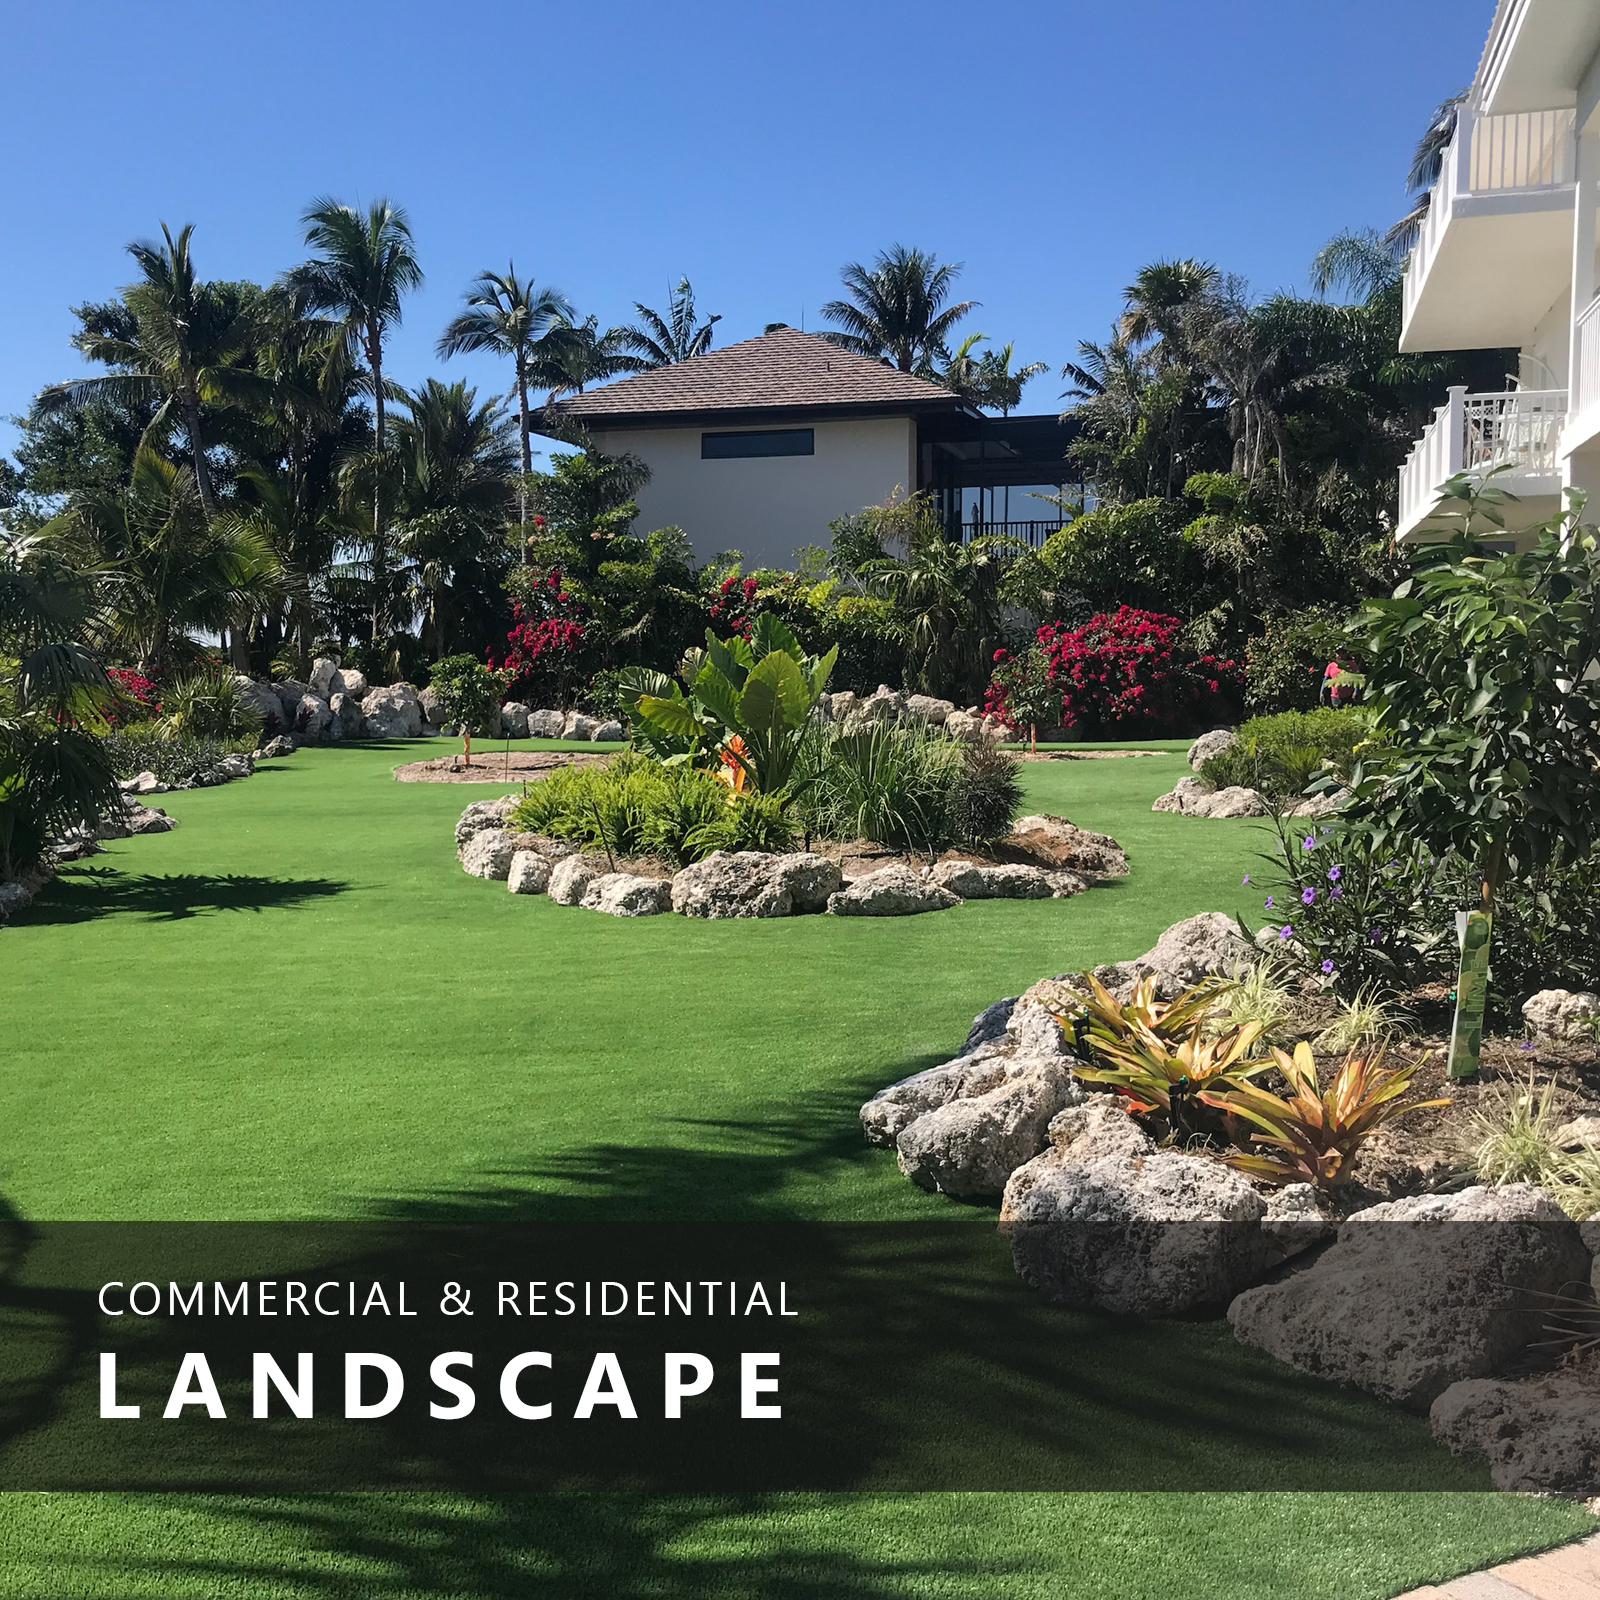 Artificial grass synthetic turf for landscapes, synthetic lawn, hardscape, garden, backyard, beautiful grass, always green lawn